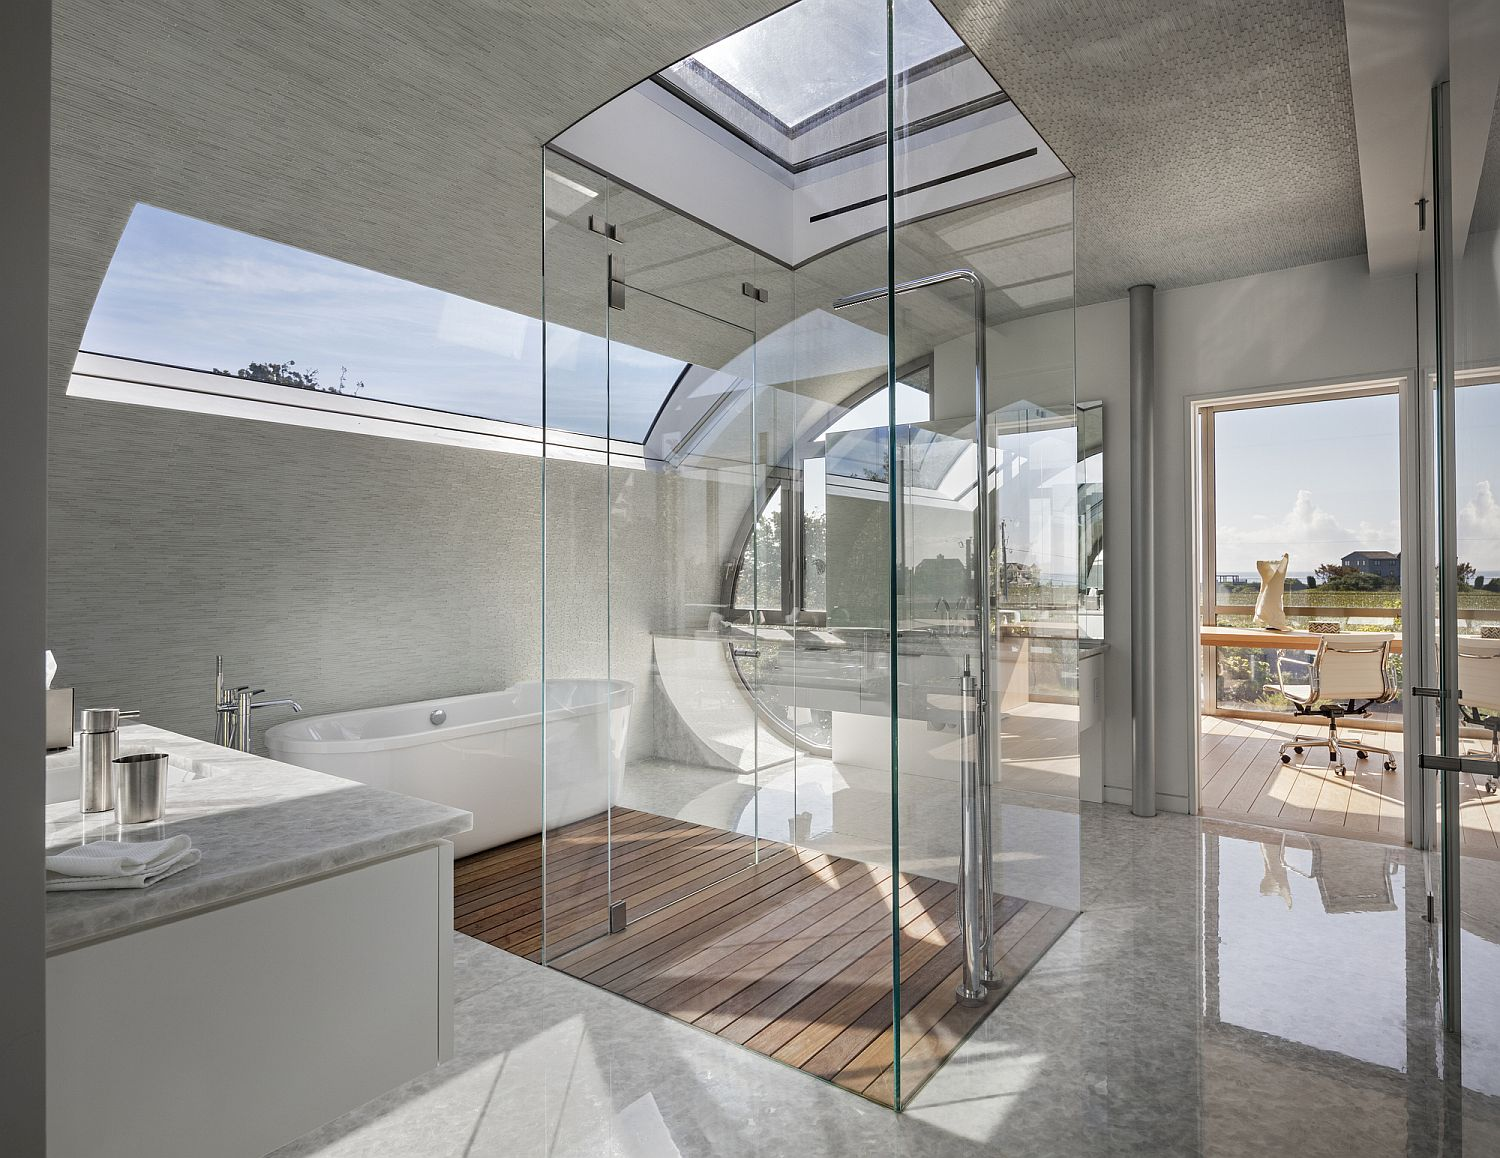 Lovely bathroom in white with an all-glass shower area and skylight